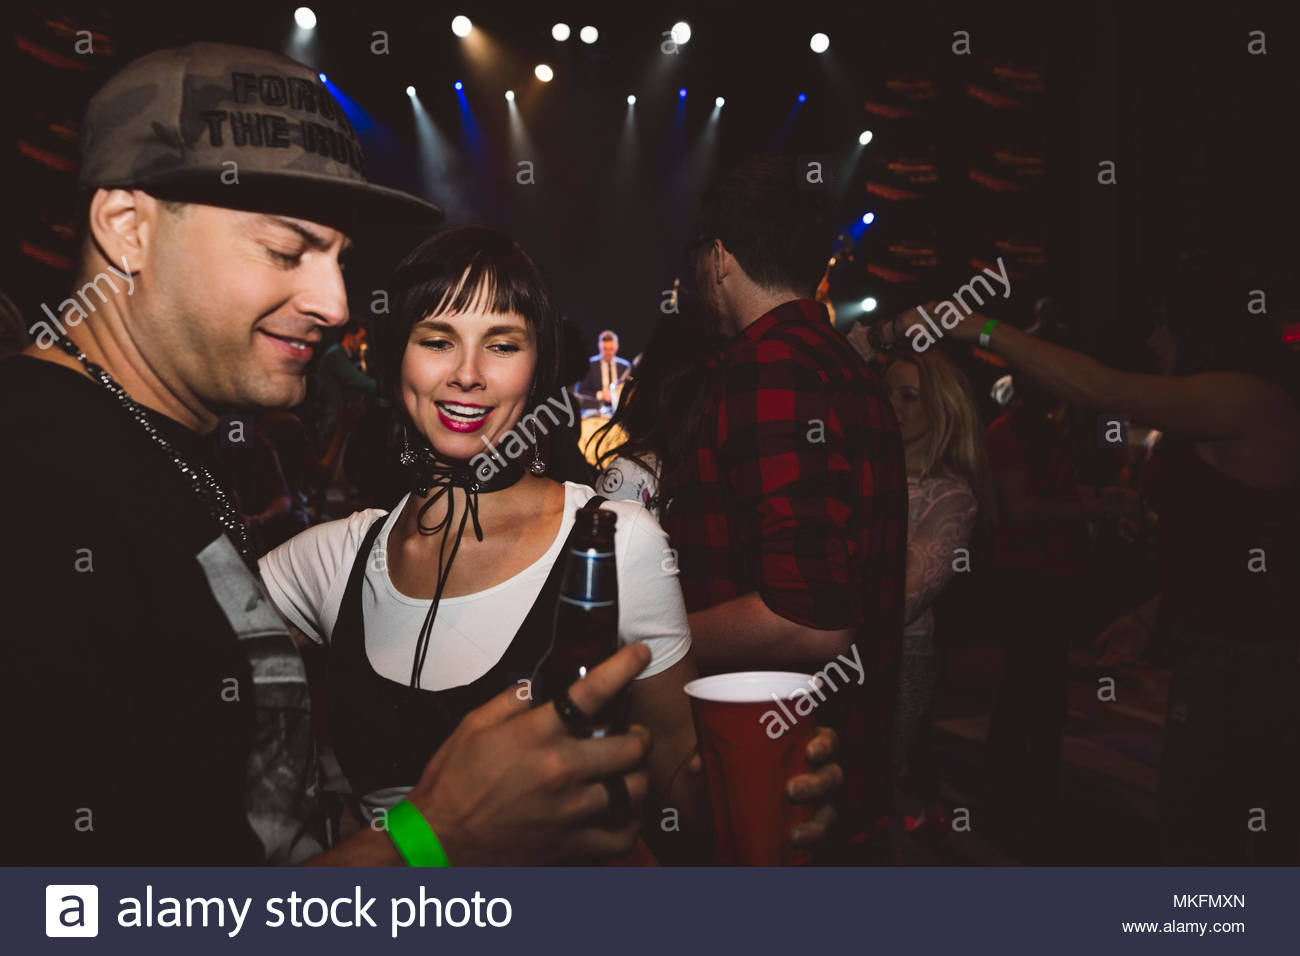 Couple drinking and dancing in nightclub - Stock Image